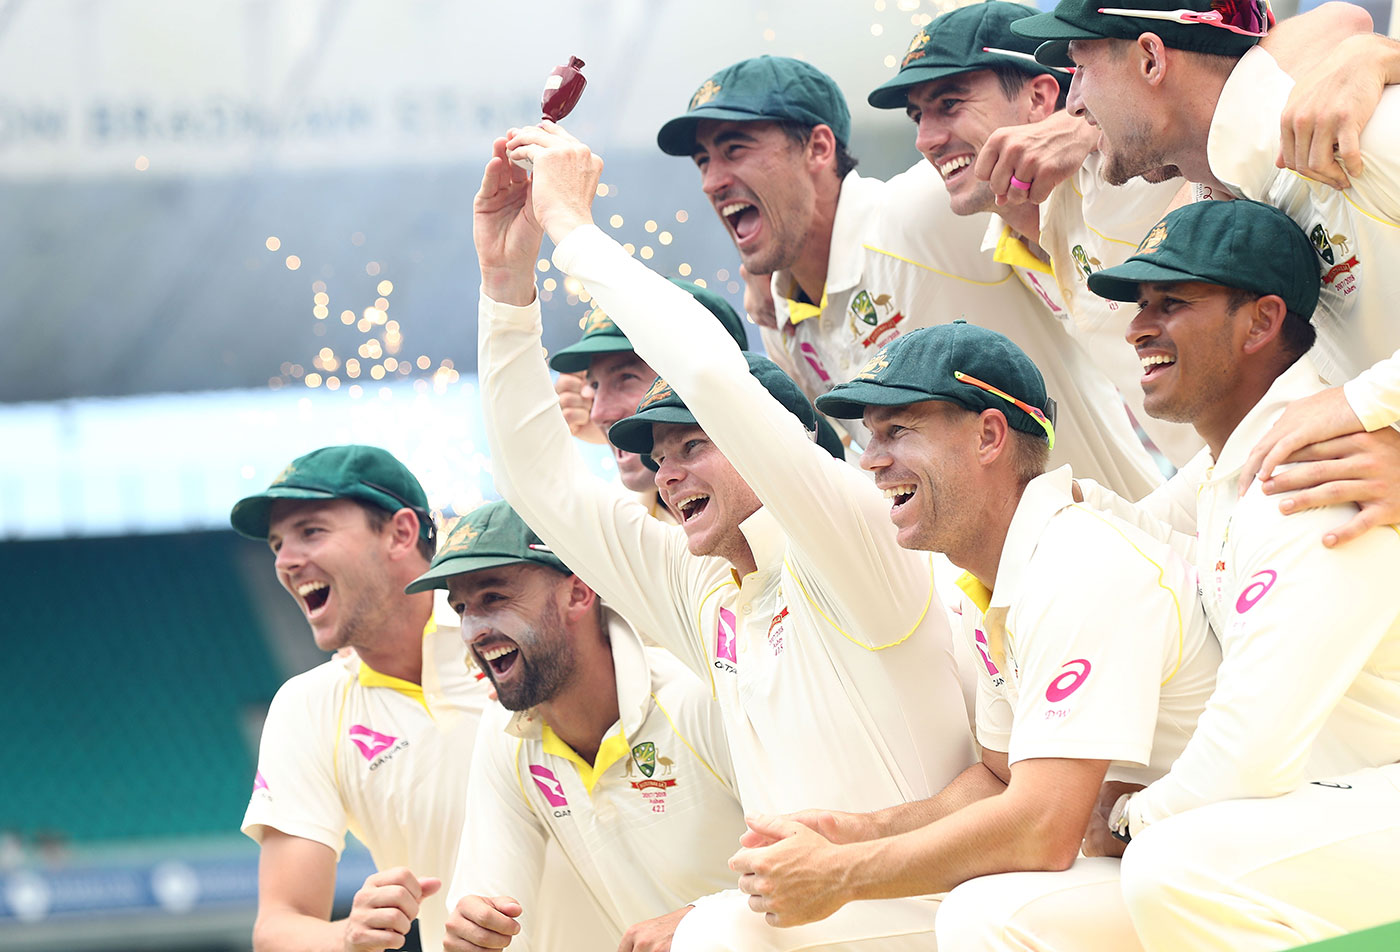 Australia winning Ashes